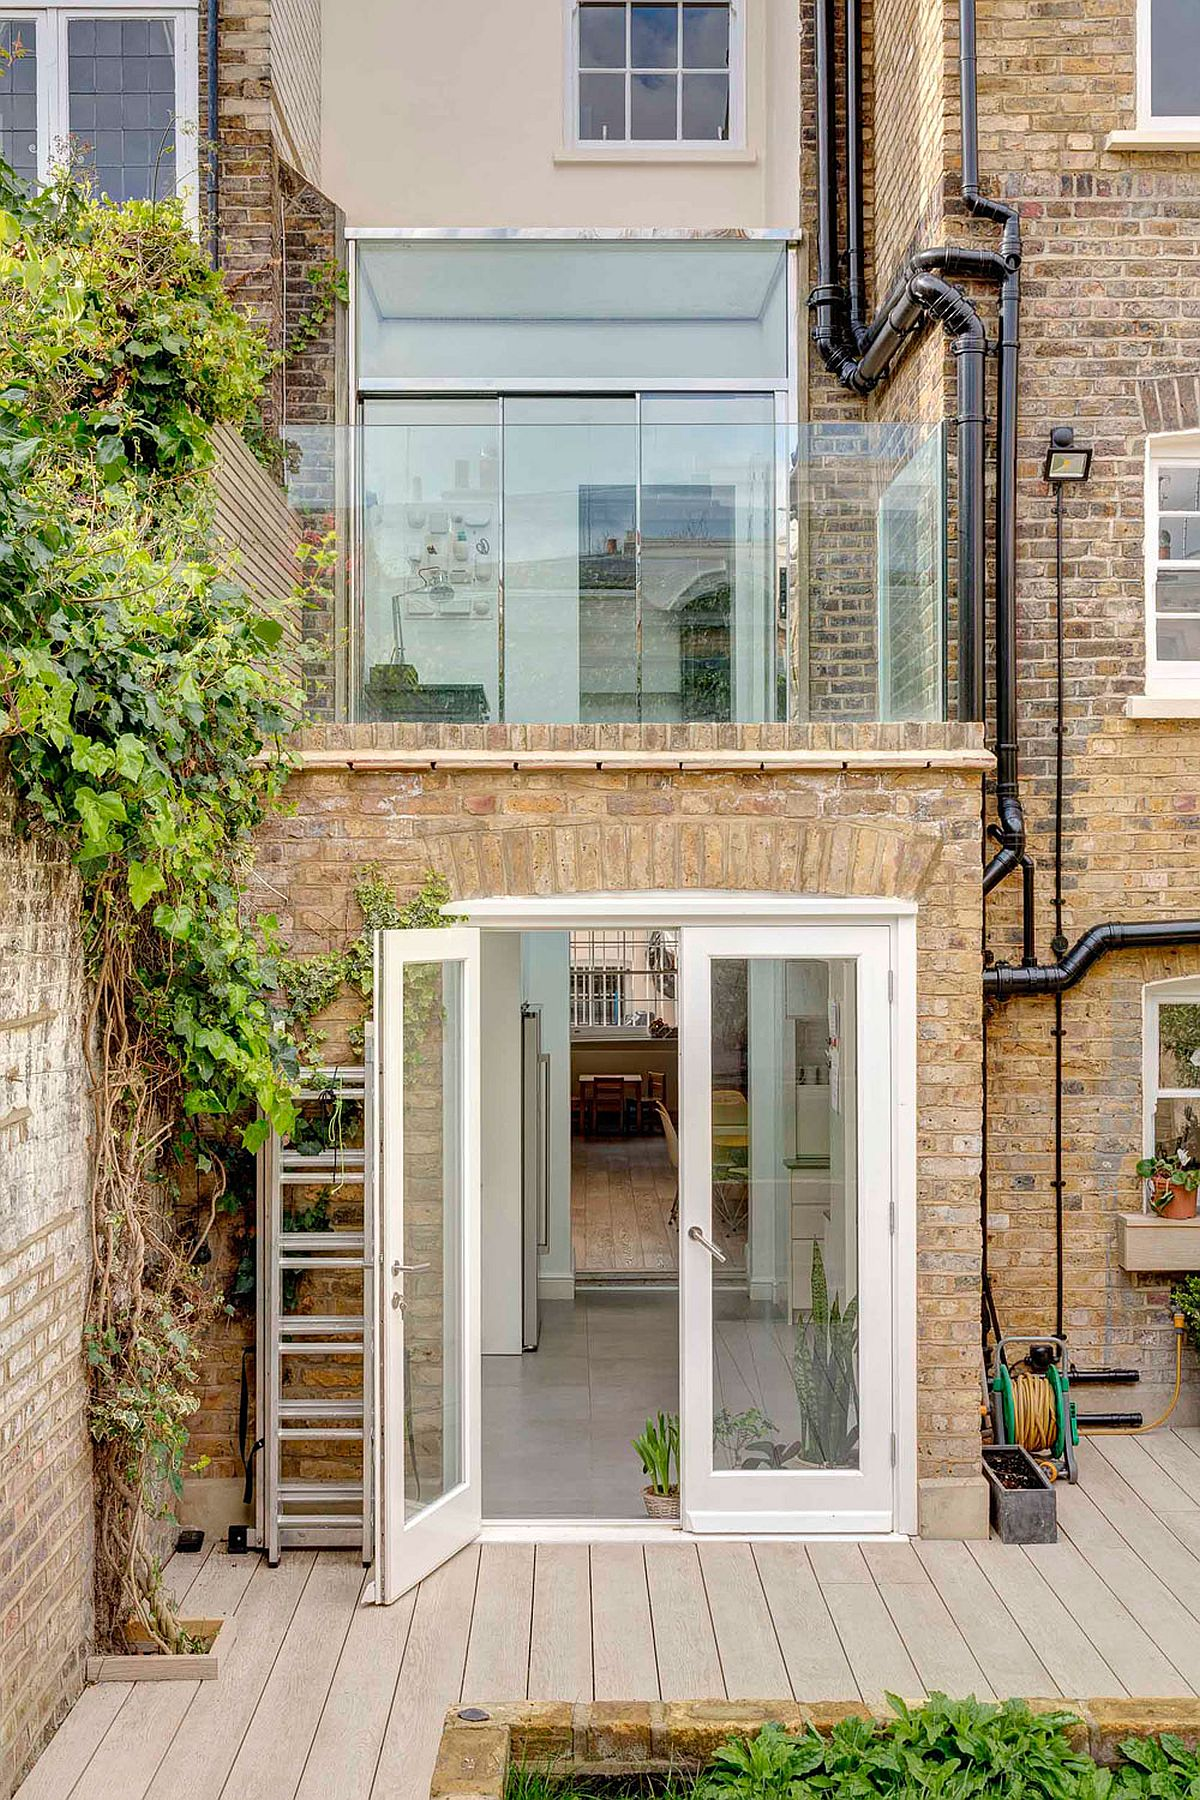 View In Gallery Modern Extension To Grade II Listed House In Westminster